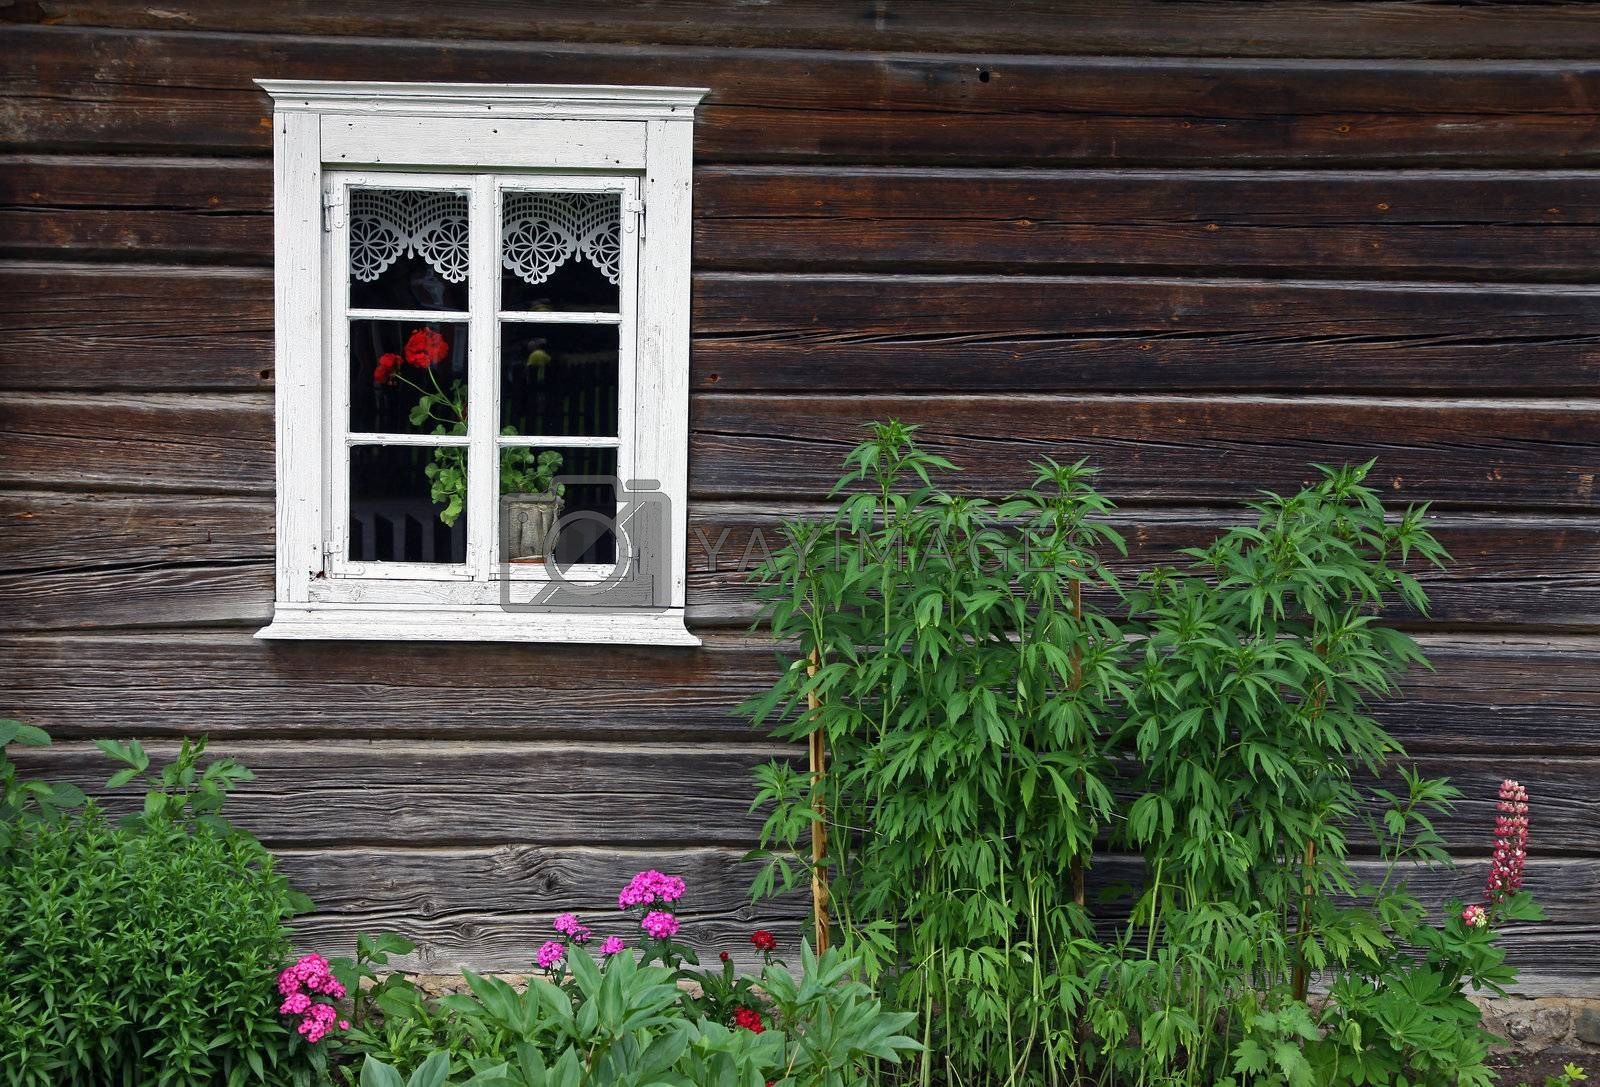 Picture of an old rural house with window and flowers